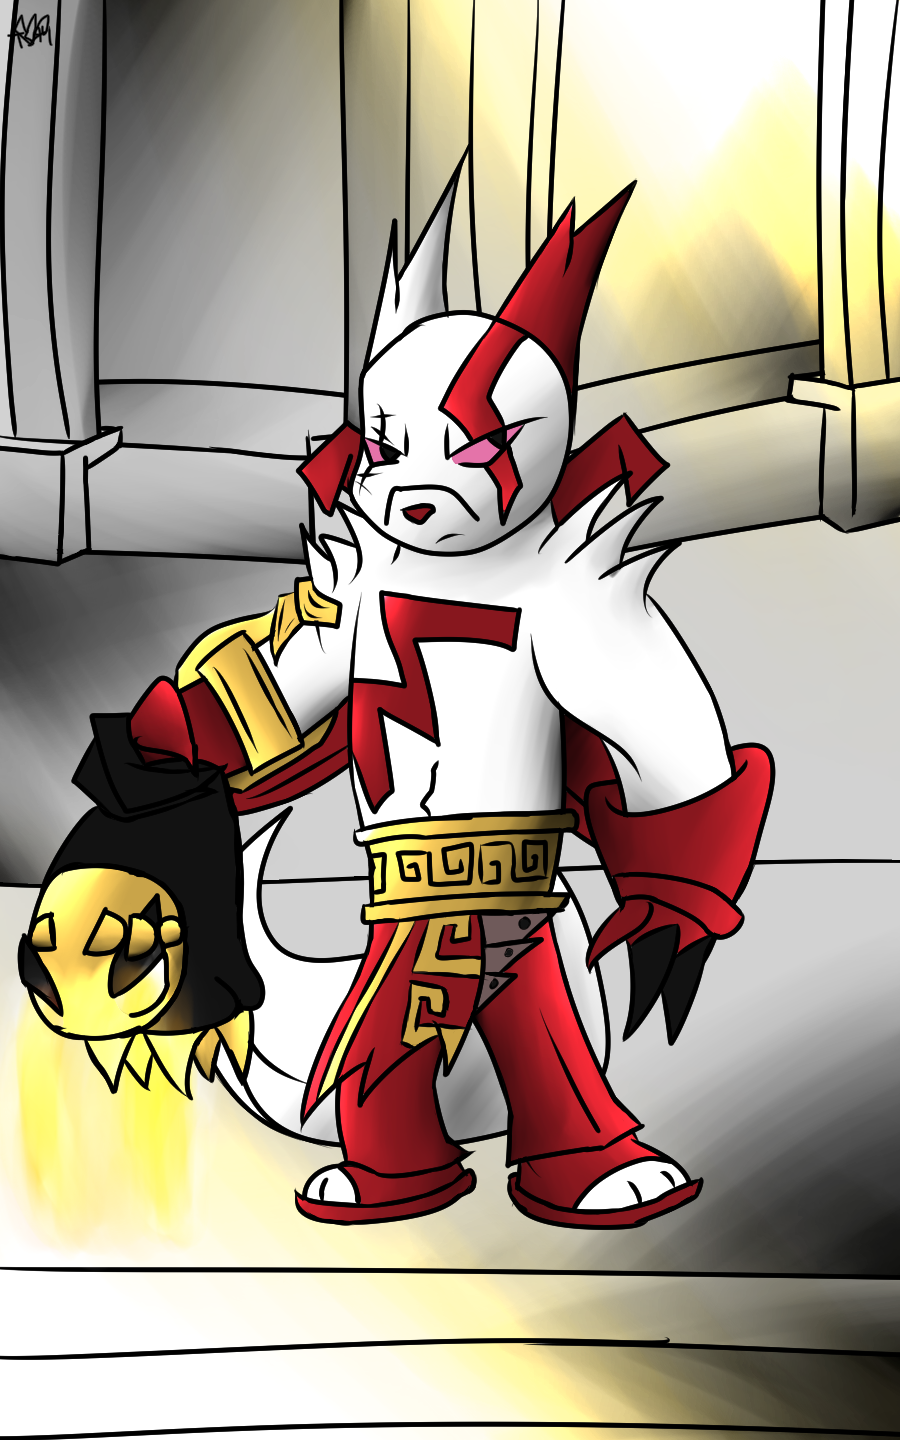 PokeGod of War by Thesimpleartist4